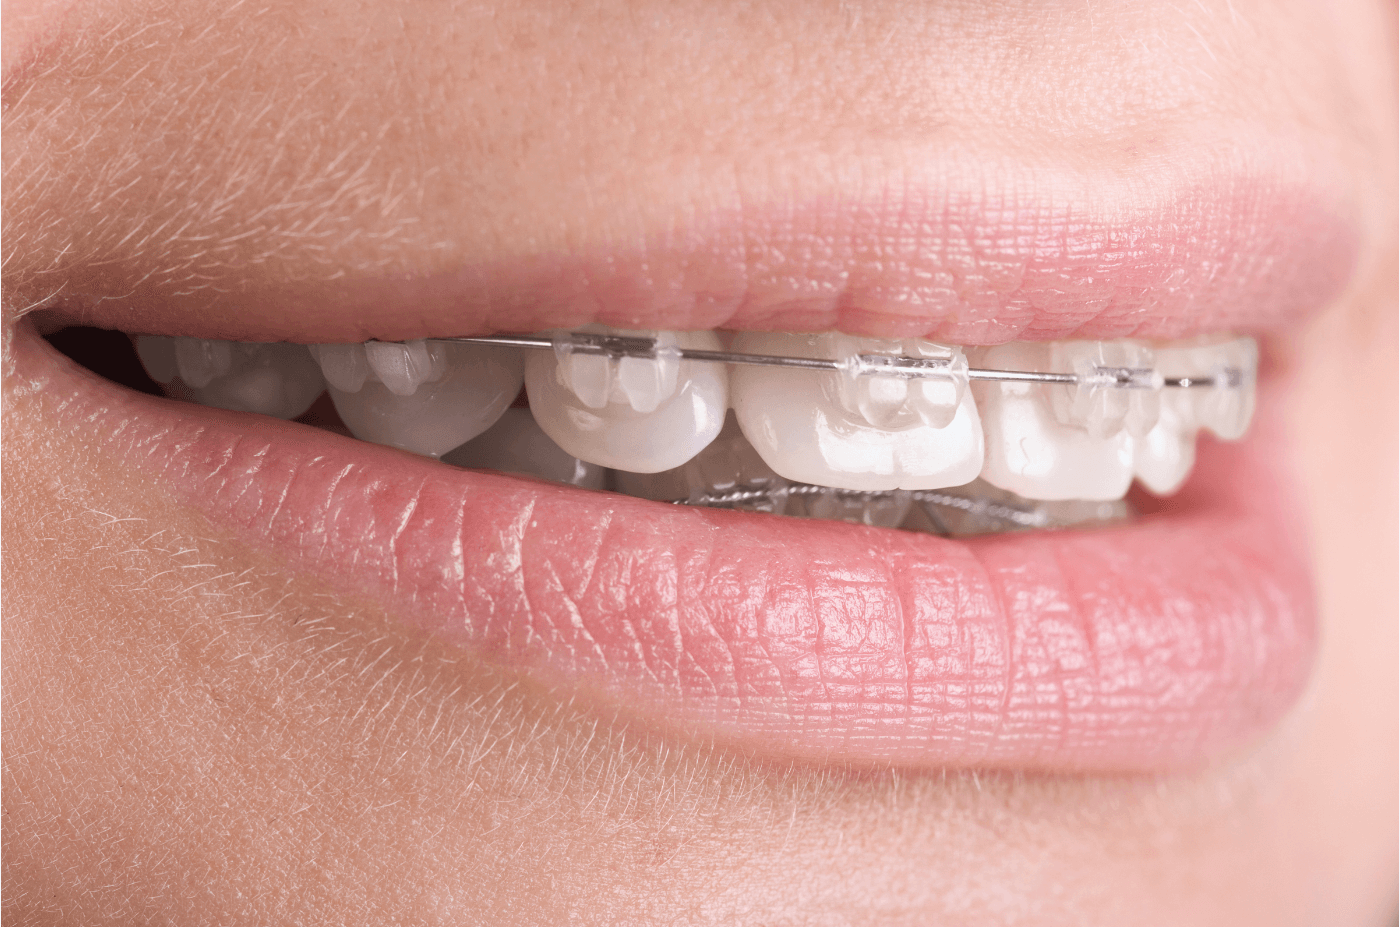 New study uses t scan technology to reveal orthodontias impact on new study uses t scan technology to reveal orthodontias impact on the bite tekscan ccuart Choice Image